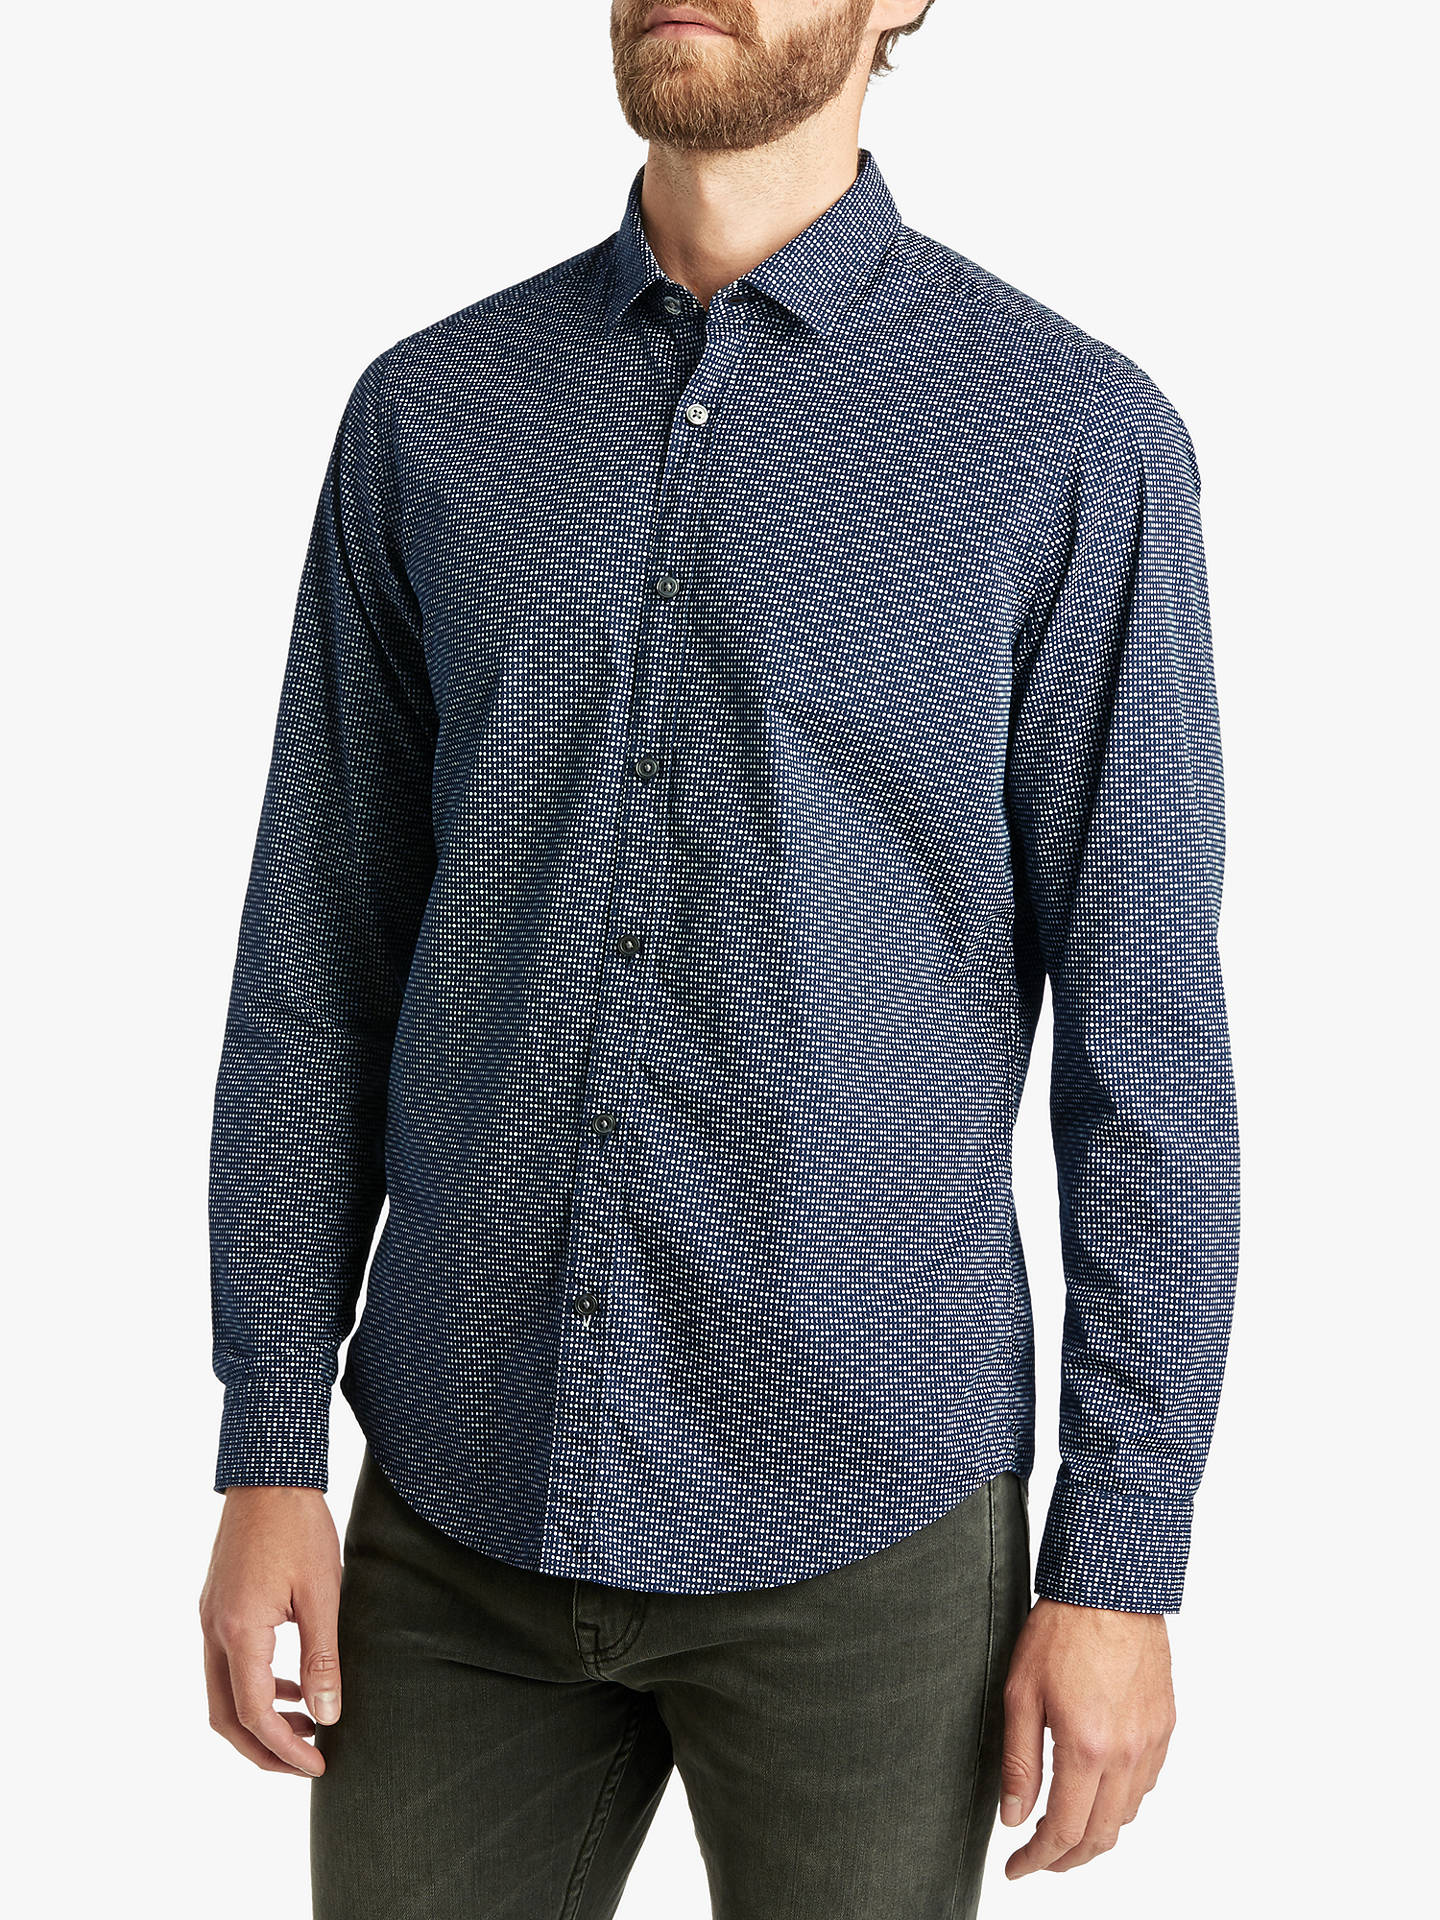 BuyBOSS Base Long Sleeve Shirt, Open Blue, S Online at johnlewis.com